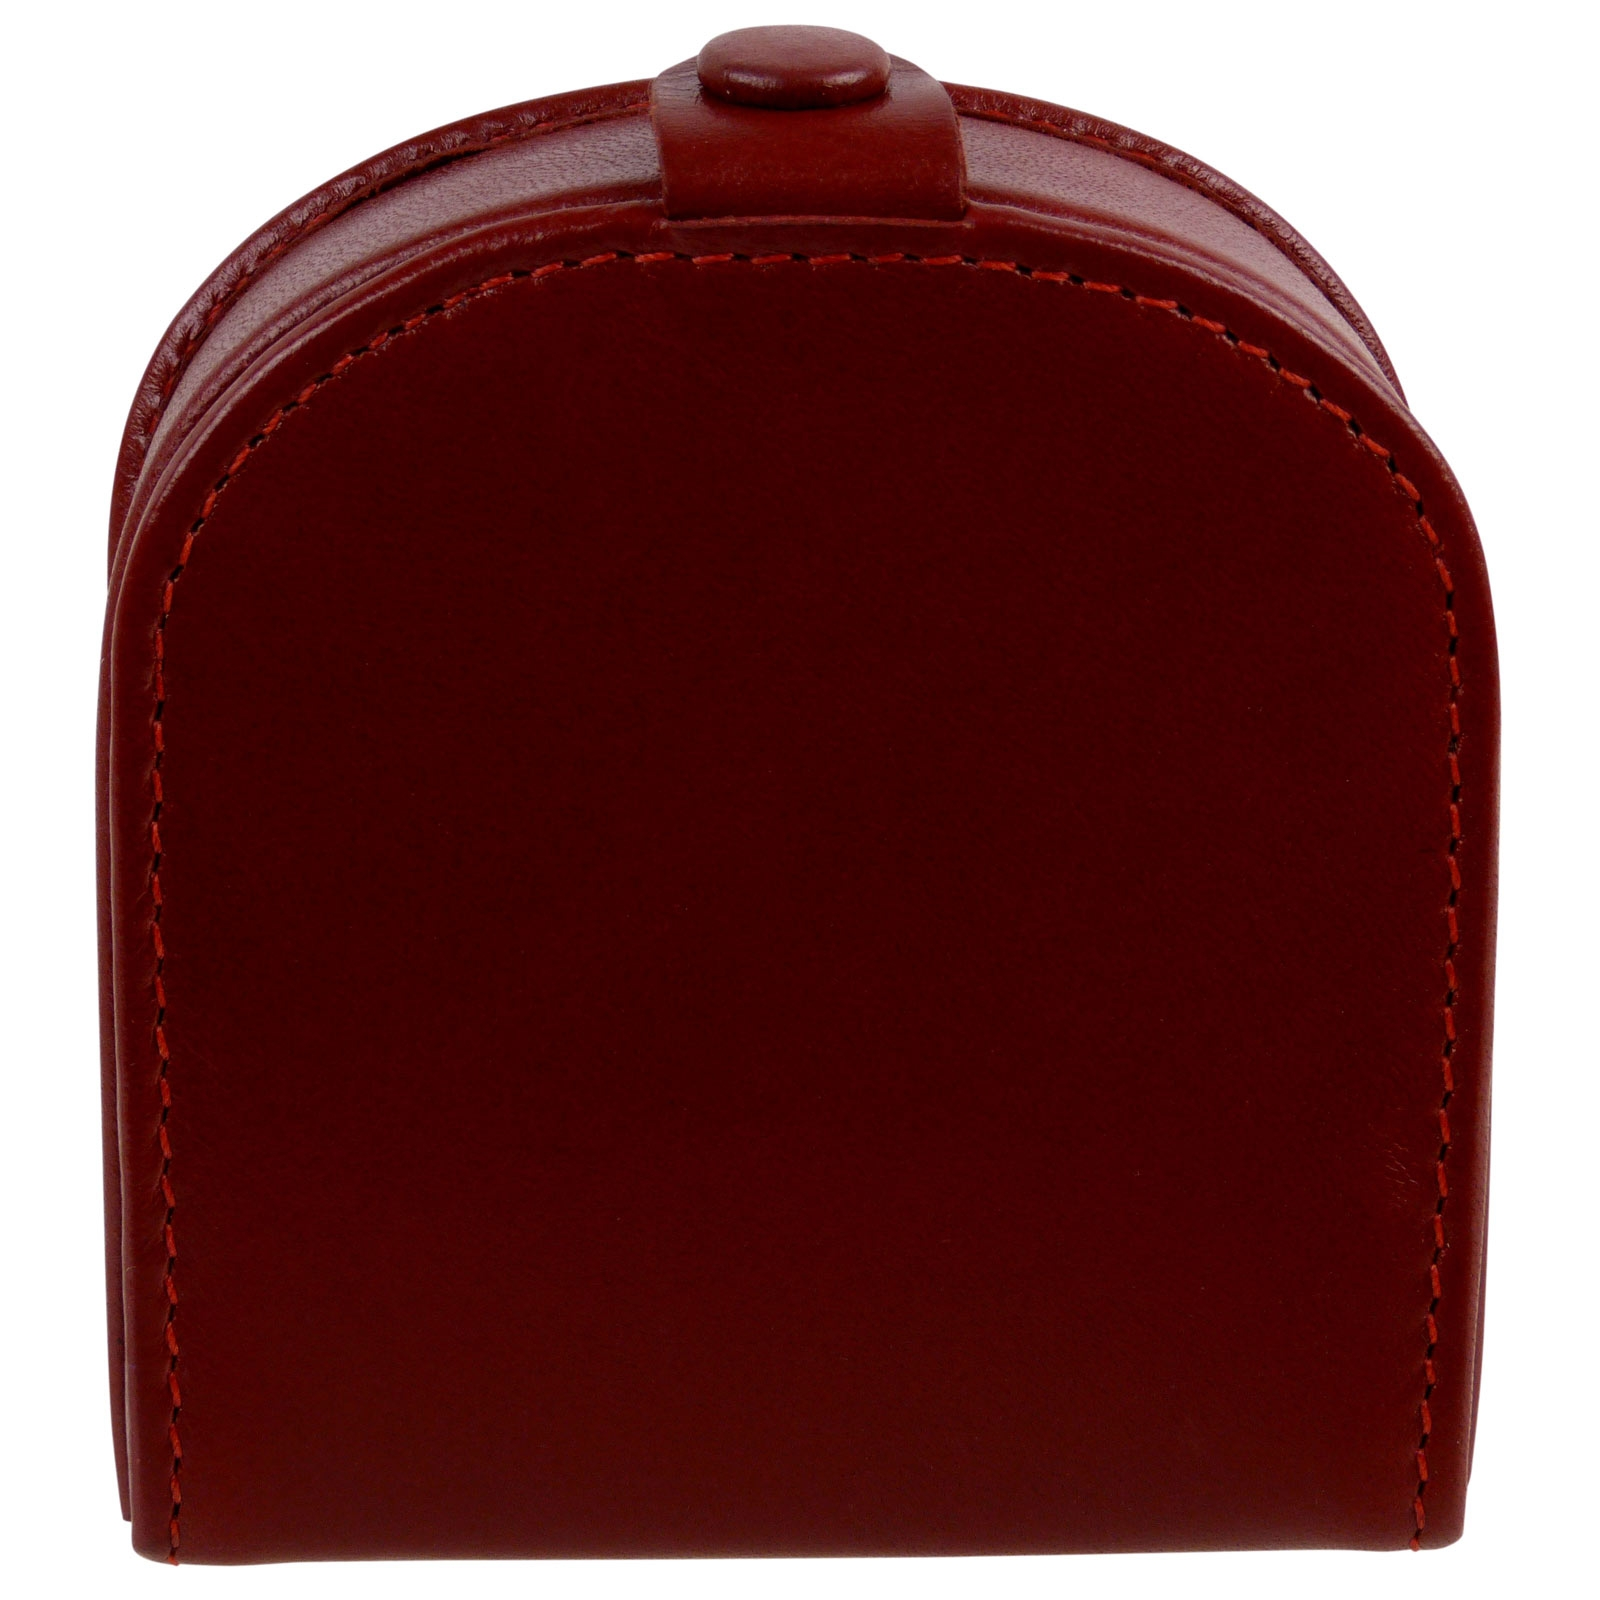 thumbnail 6 - Mens-Classic-Leather-Tabbed-Coin-Tray-by-Visconti-Monza-Collection-Gift-Boxed